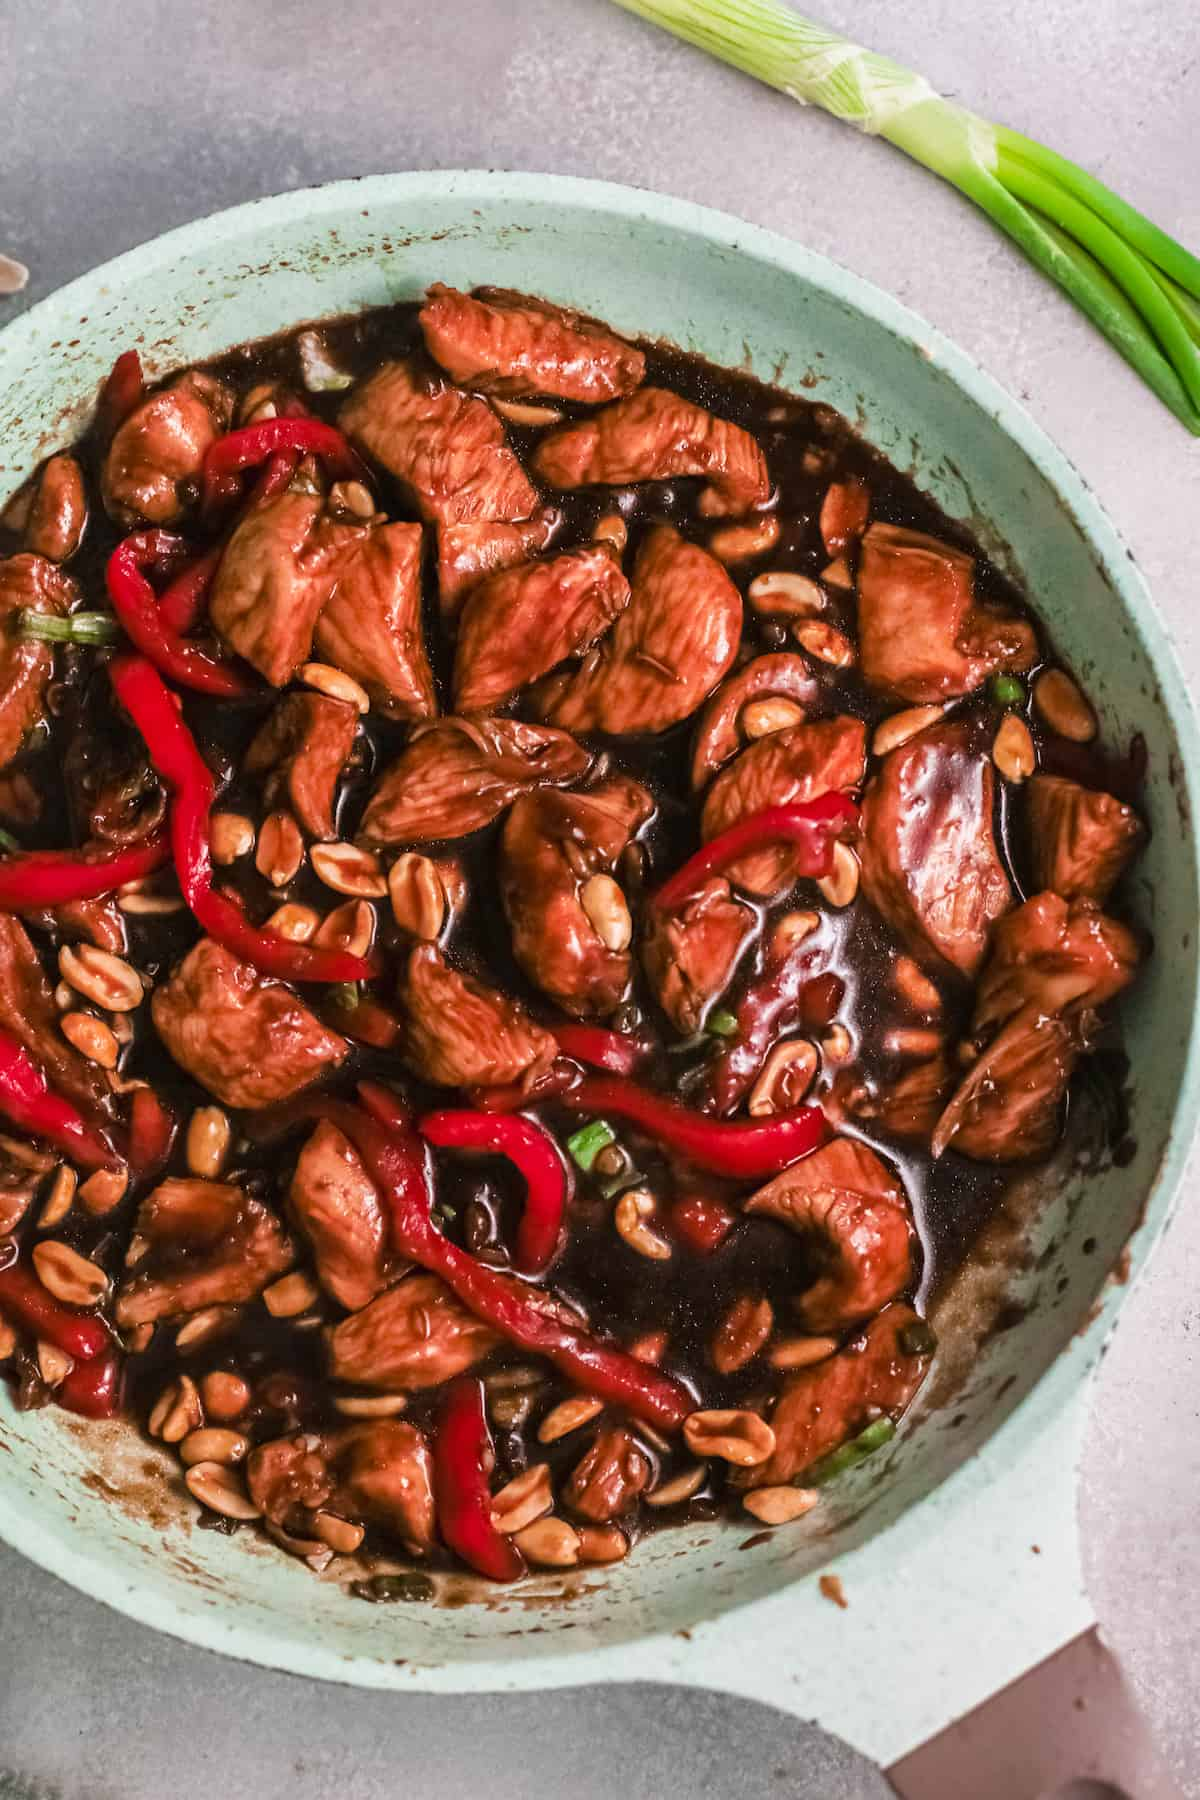 top down view of the kung pao chicken inside a large skillet